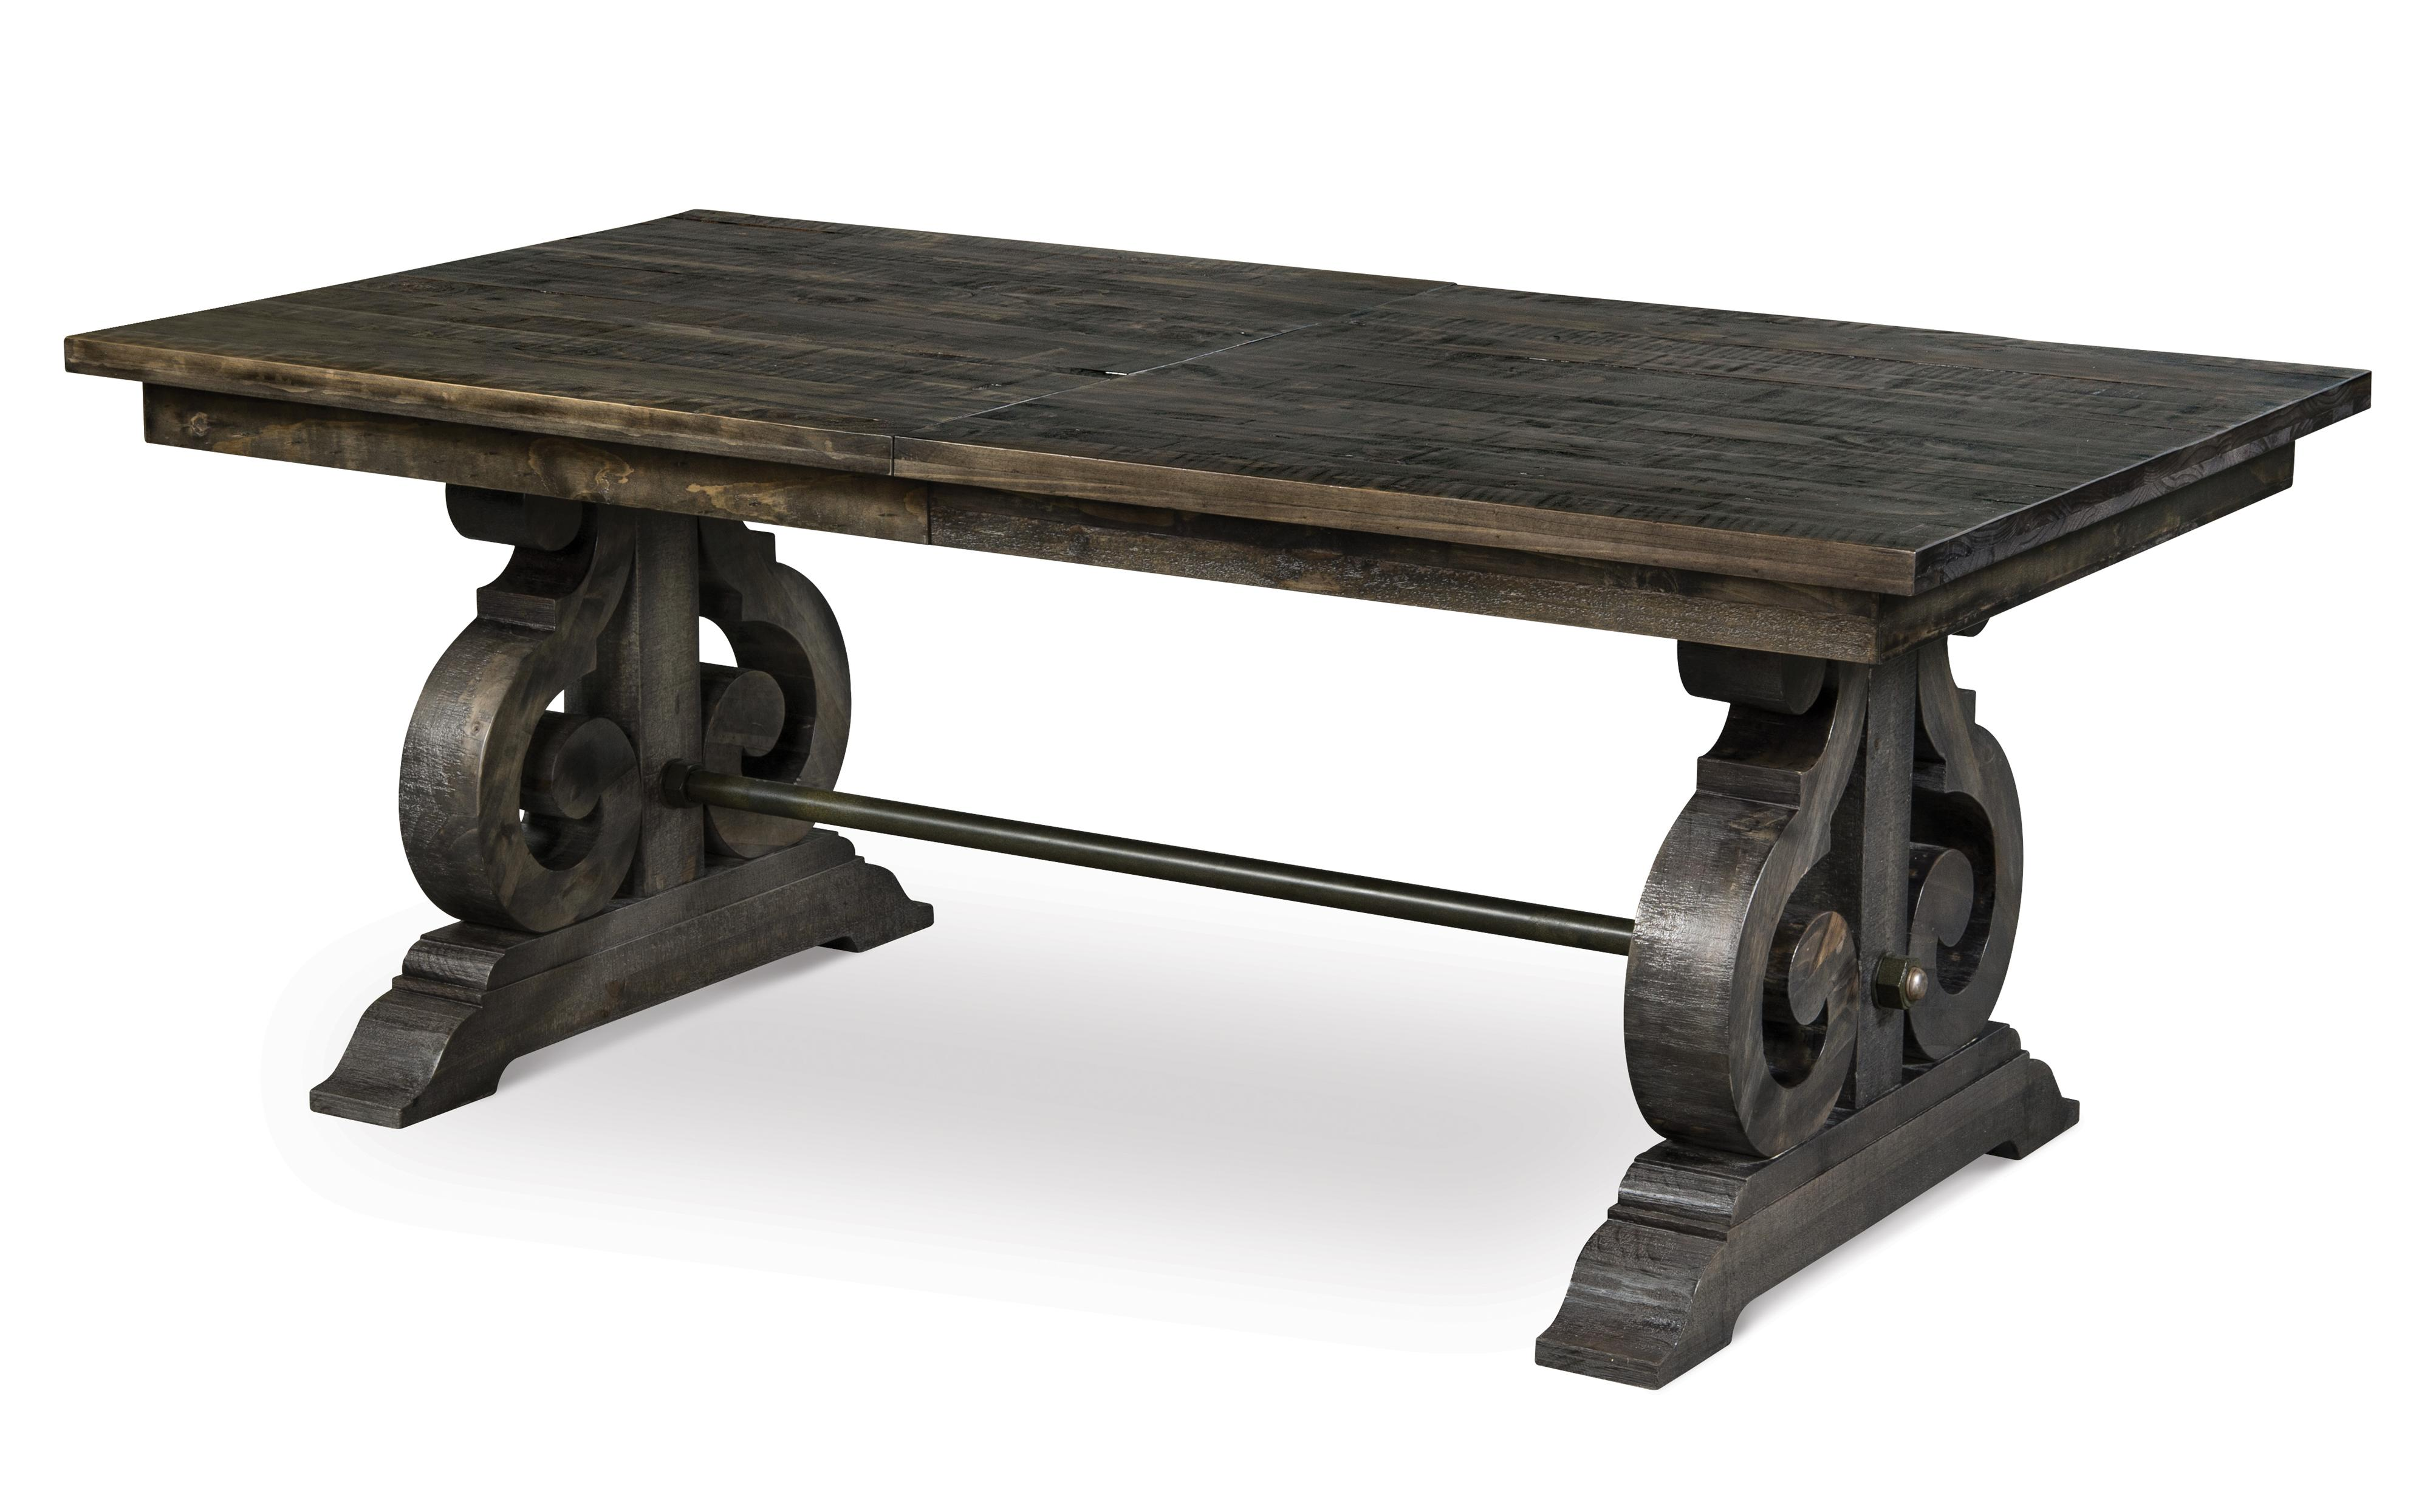 Bellamy Rectangular Dining Table w/ Butterfly Leaf by Magnussen Home at Johnny Janosik